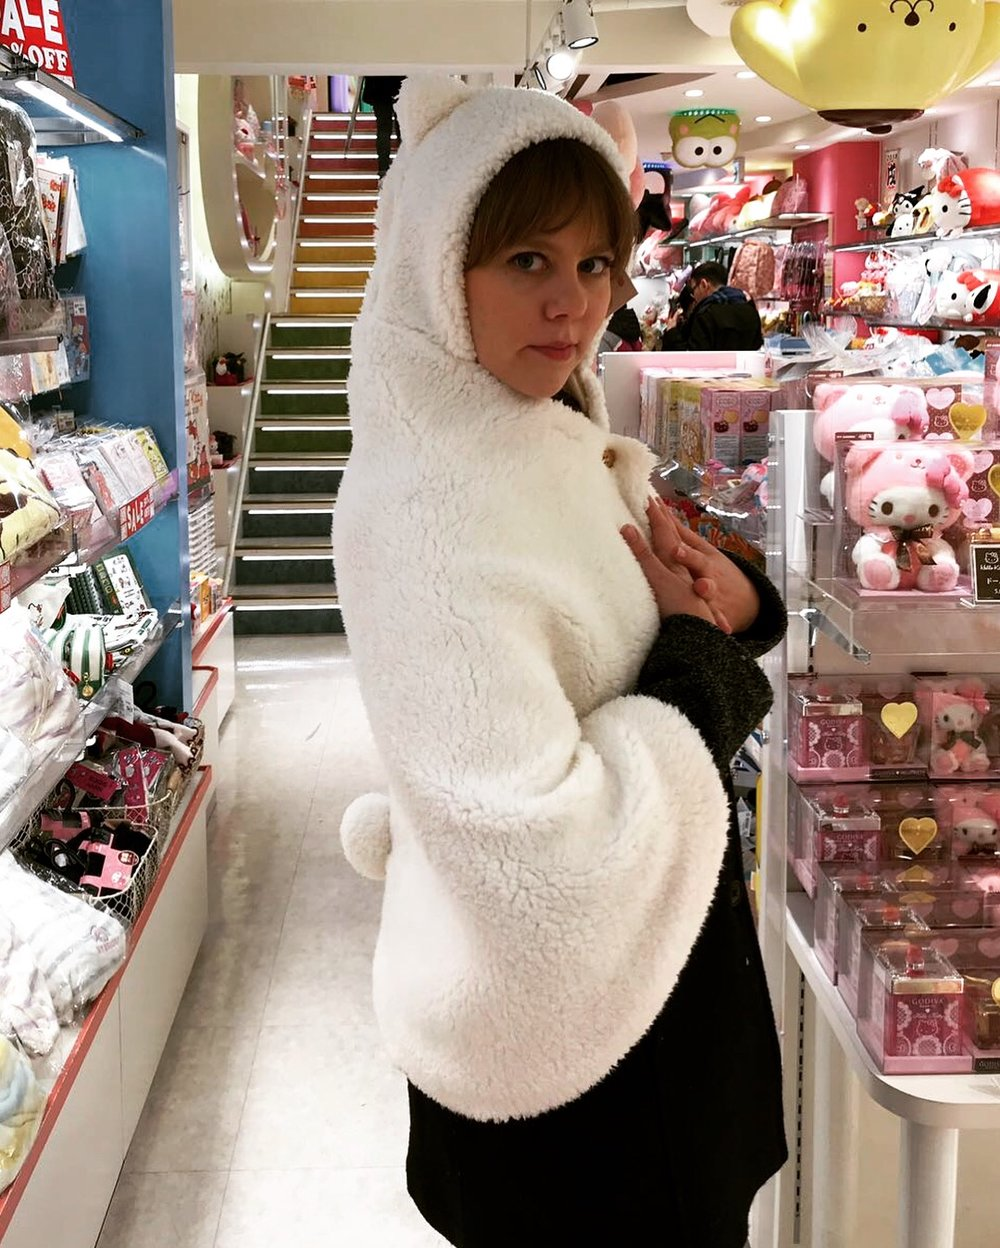 What trip to Japan would be complete without a Hello Kitty modeling session?